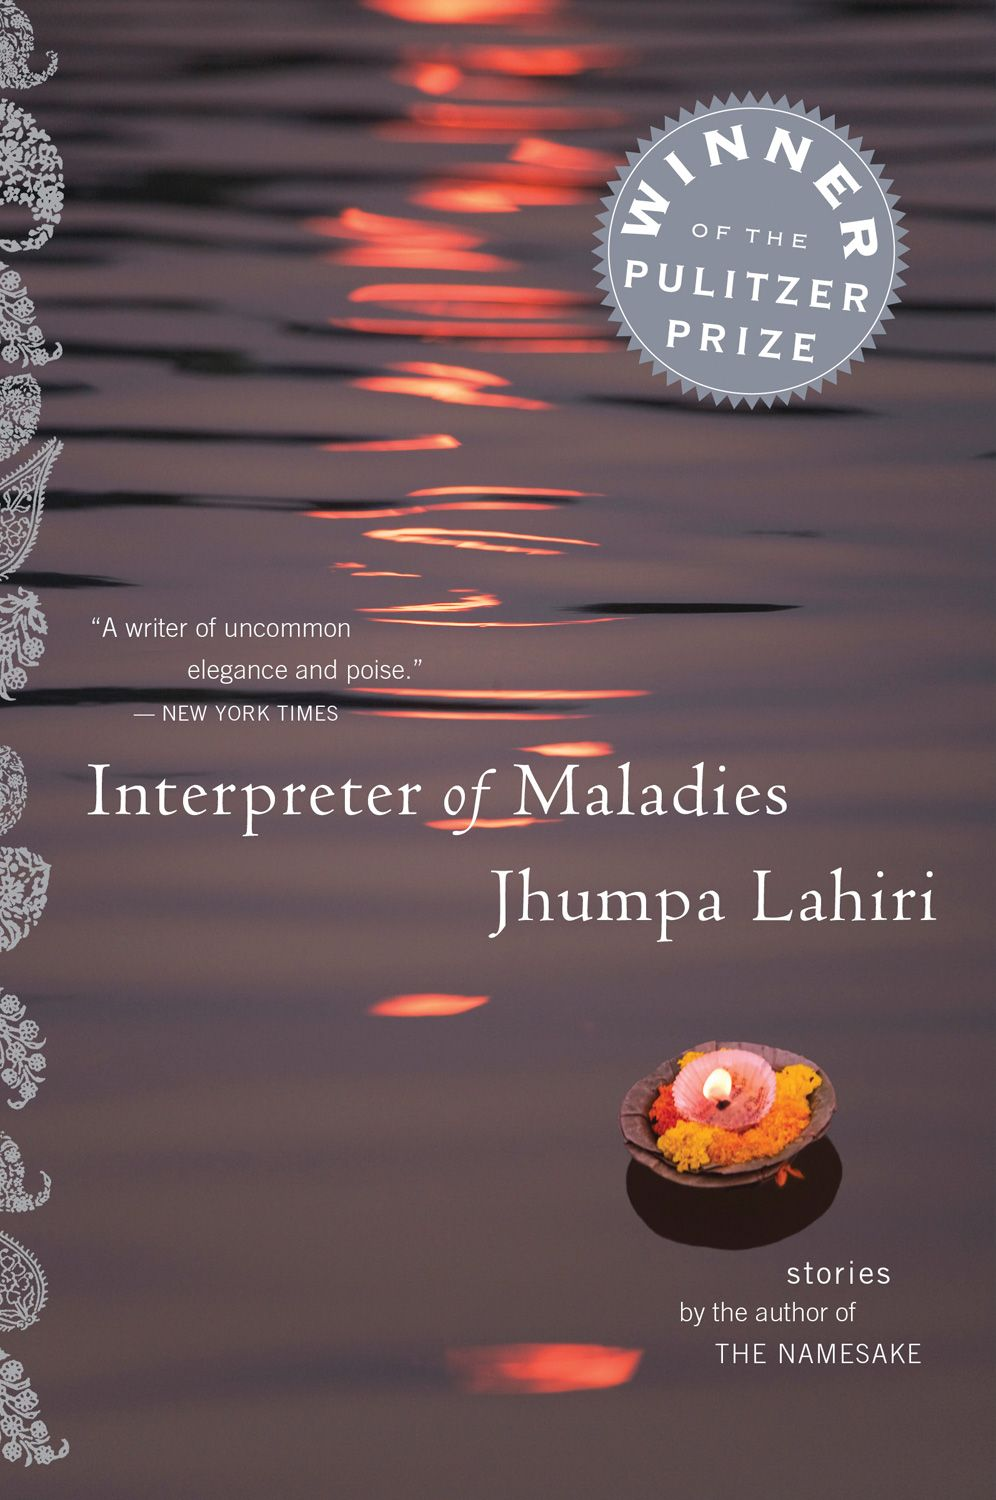 ?interpreter of maladies by jhumpa lahiri essay Interpreter of maladies by jhumpa lahiri essay, buy custom interpreter of maladies by jhumpa lahiri essay paper cheap, interpreter of maladies by jhumpa lahiri essay paper sample, interpreter of maladies by jhumpa lahiri essay.